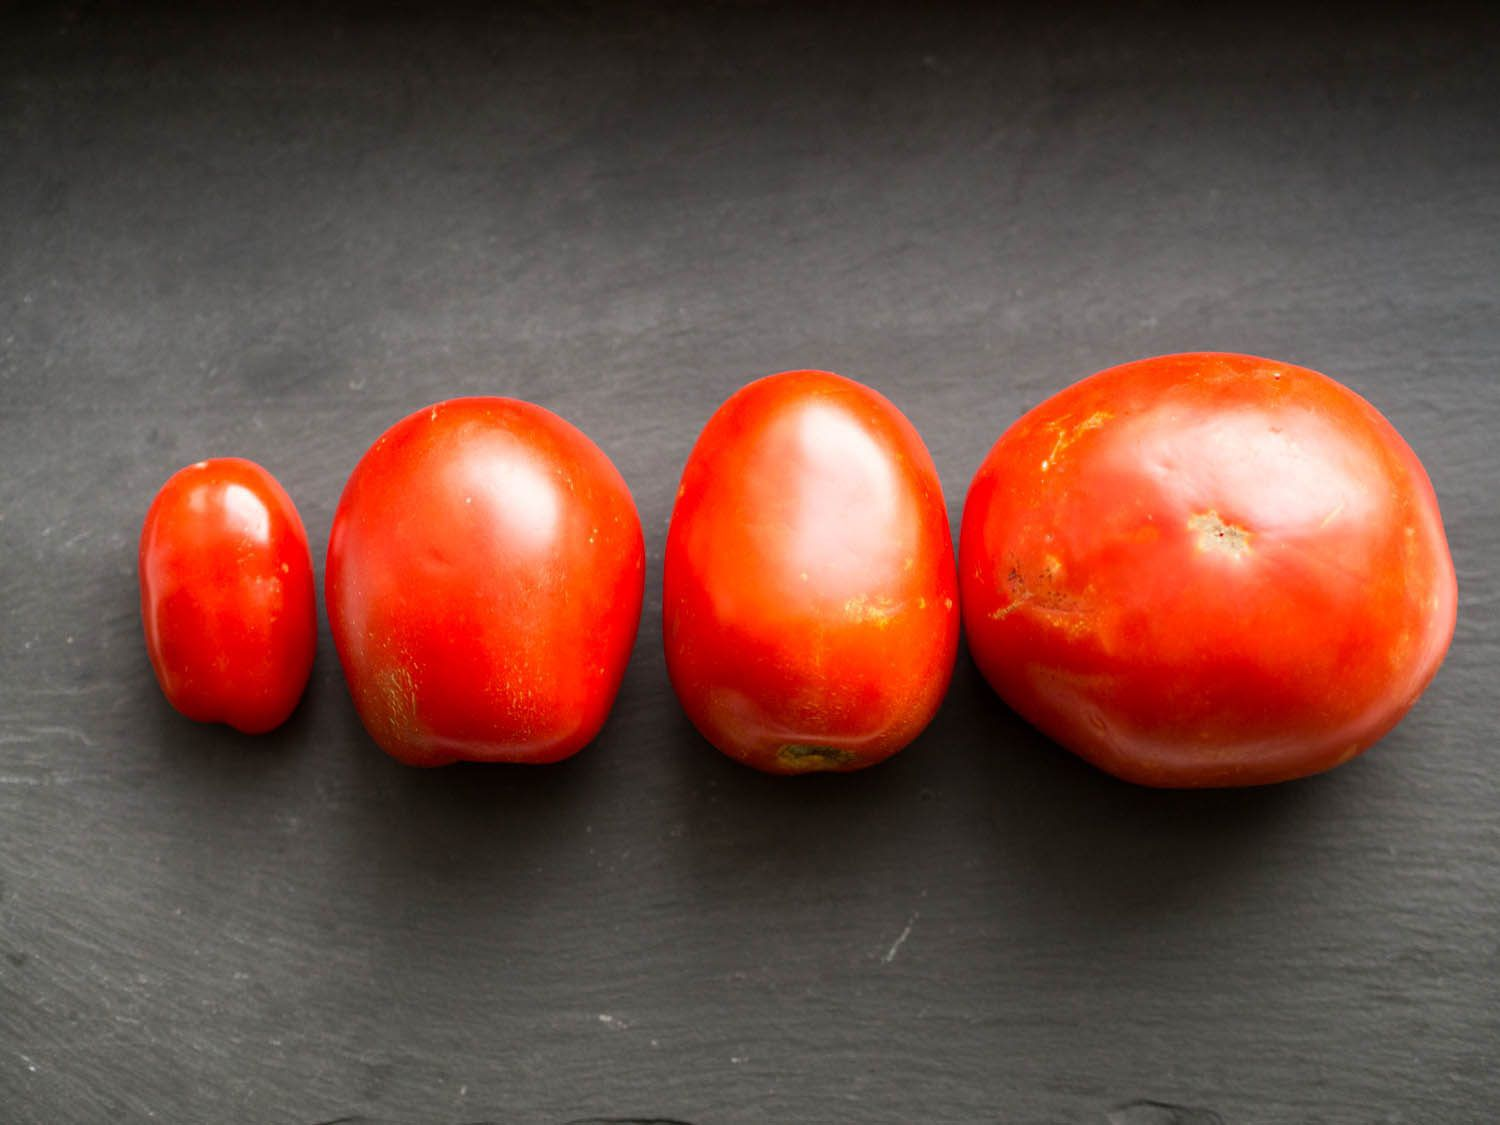 Different varieties of fresh whole tomatoes